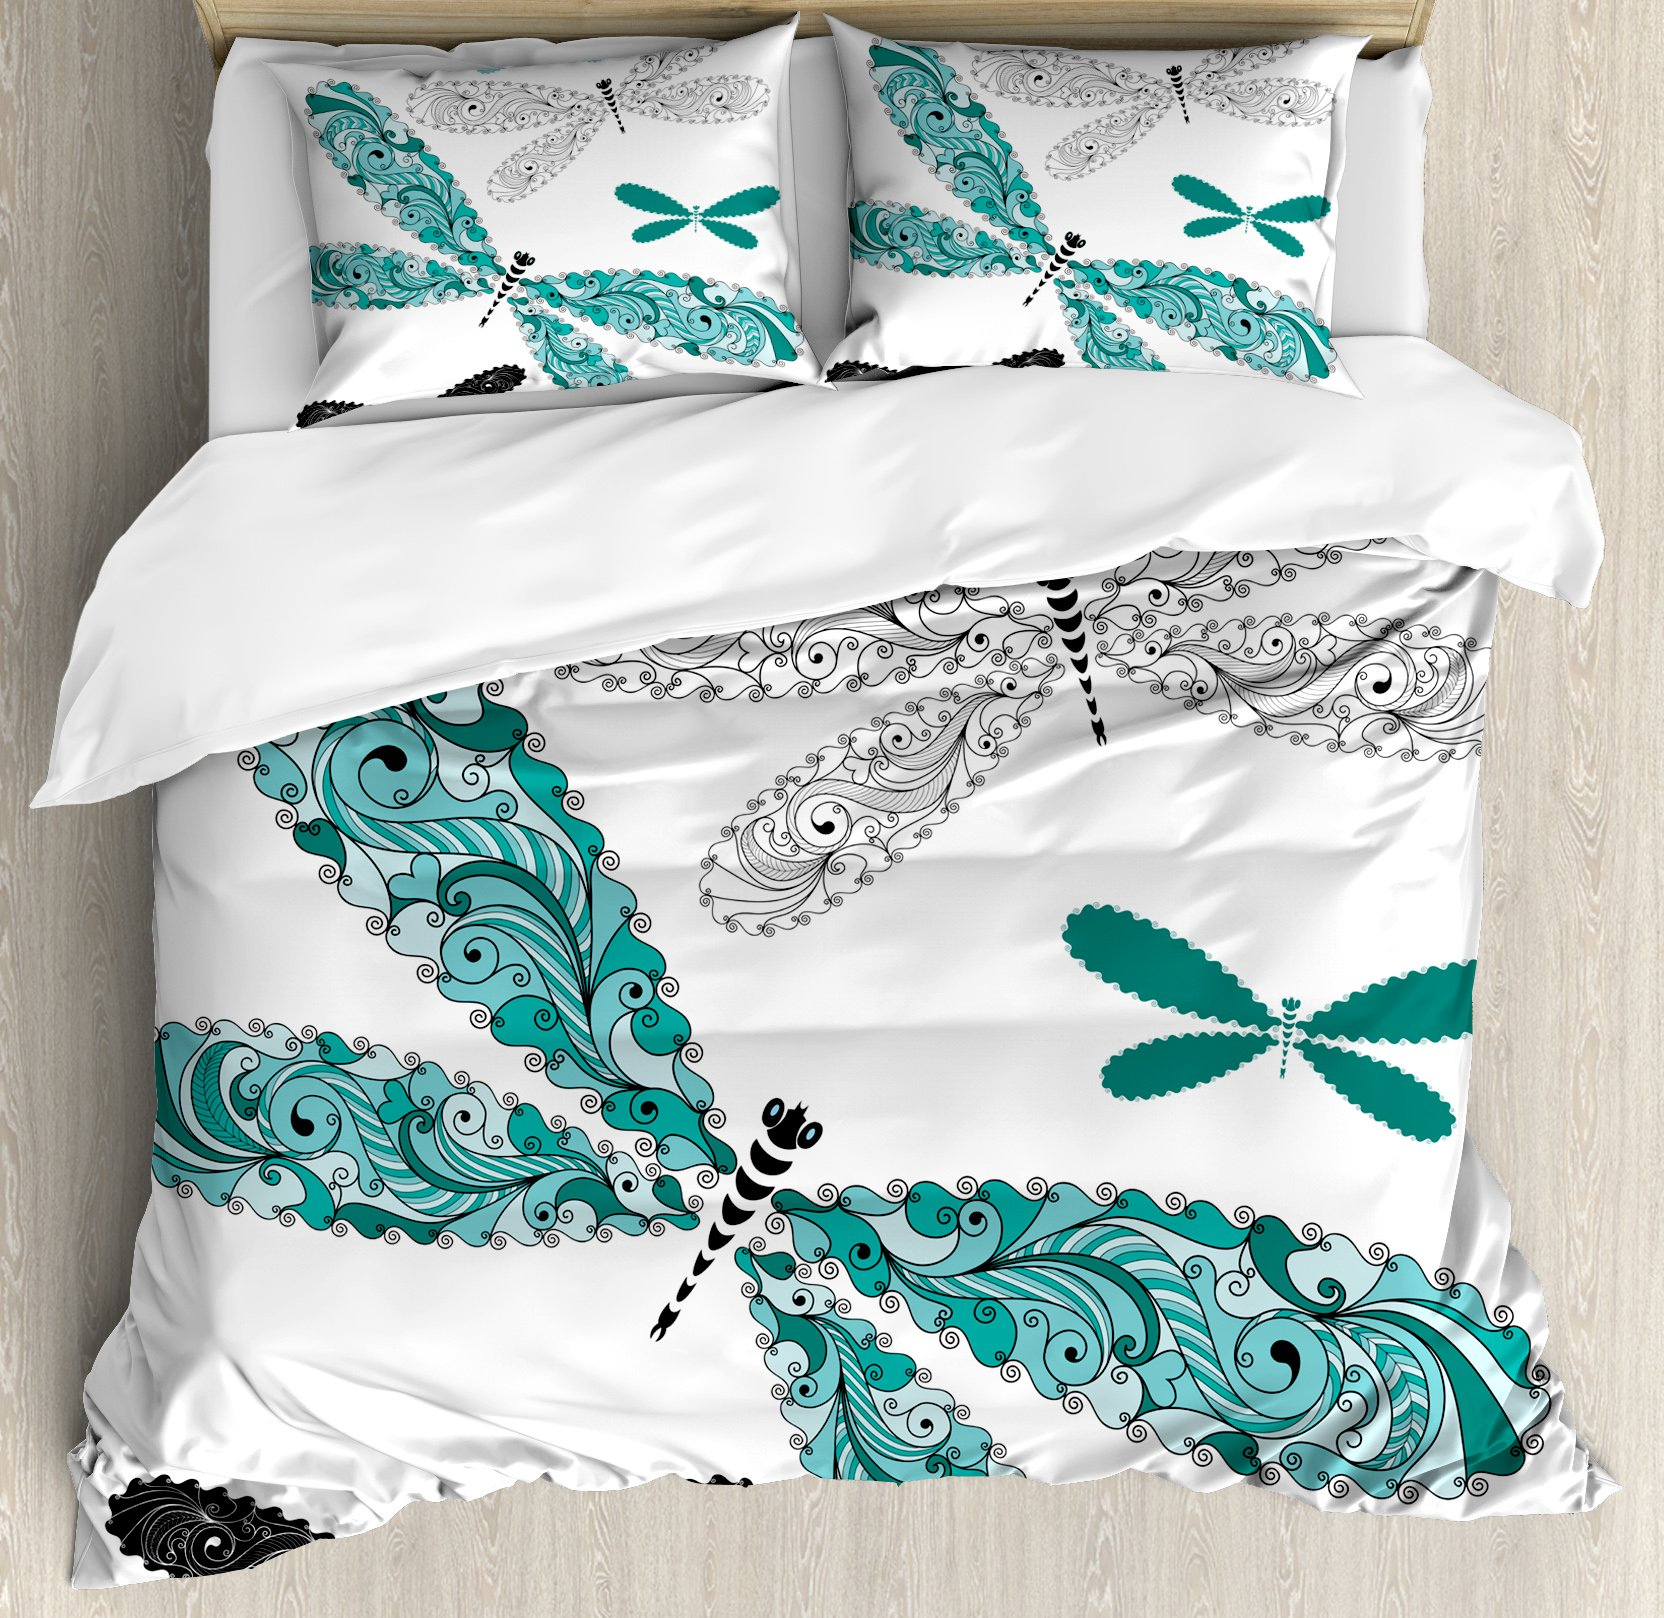 Ambesonne Dragonfly Duvet Cover Set King Size, Ornamental Dragonfly Figures with Lace and Damask Effects Artsy Image, Decorative 3 Piece Bedding Set with 2 Pillow Shams, Teal Turquoise Black